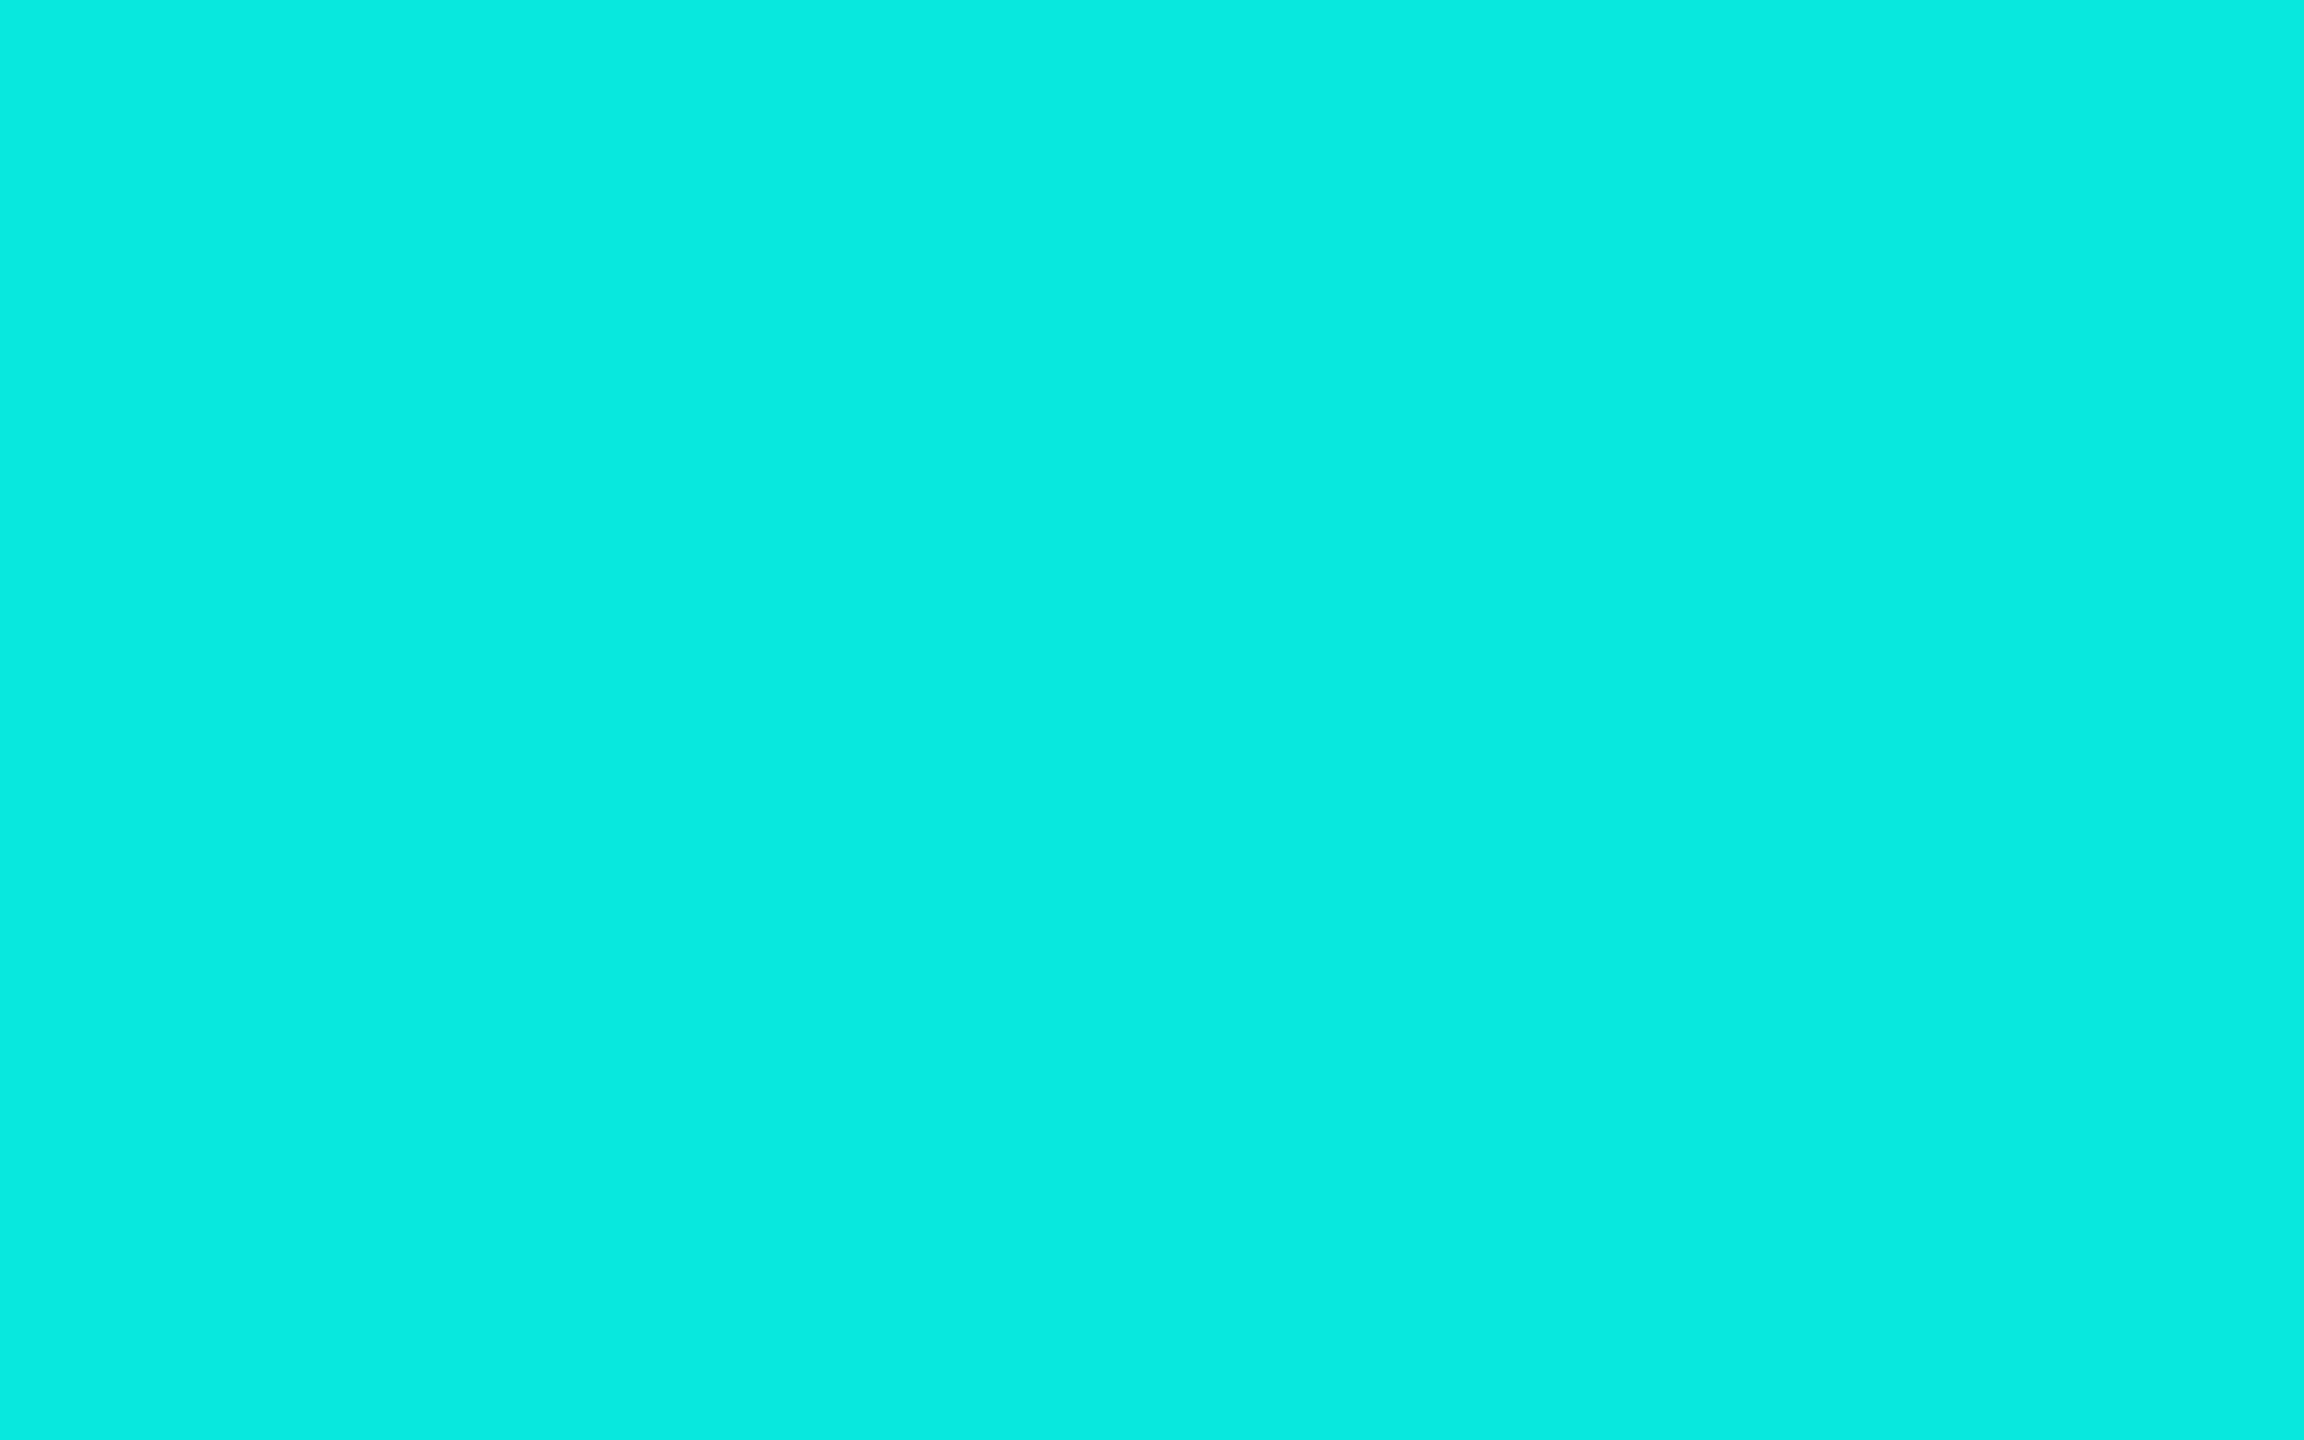 2304x1440 Bright Turquoise Solid Color Background